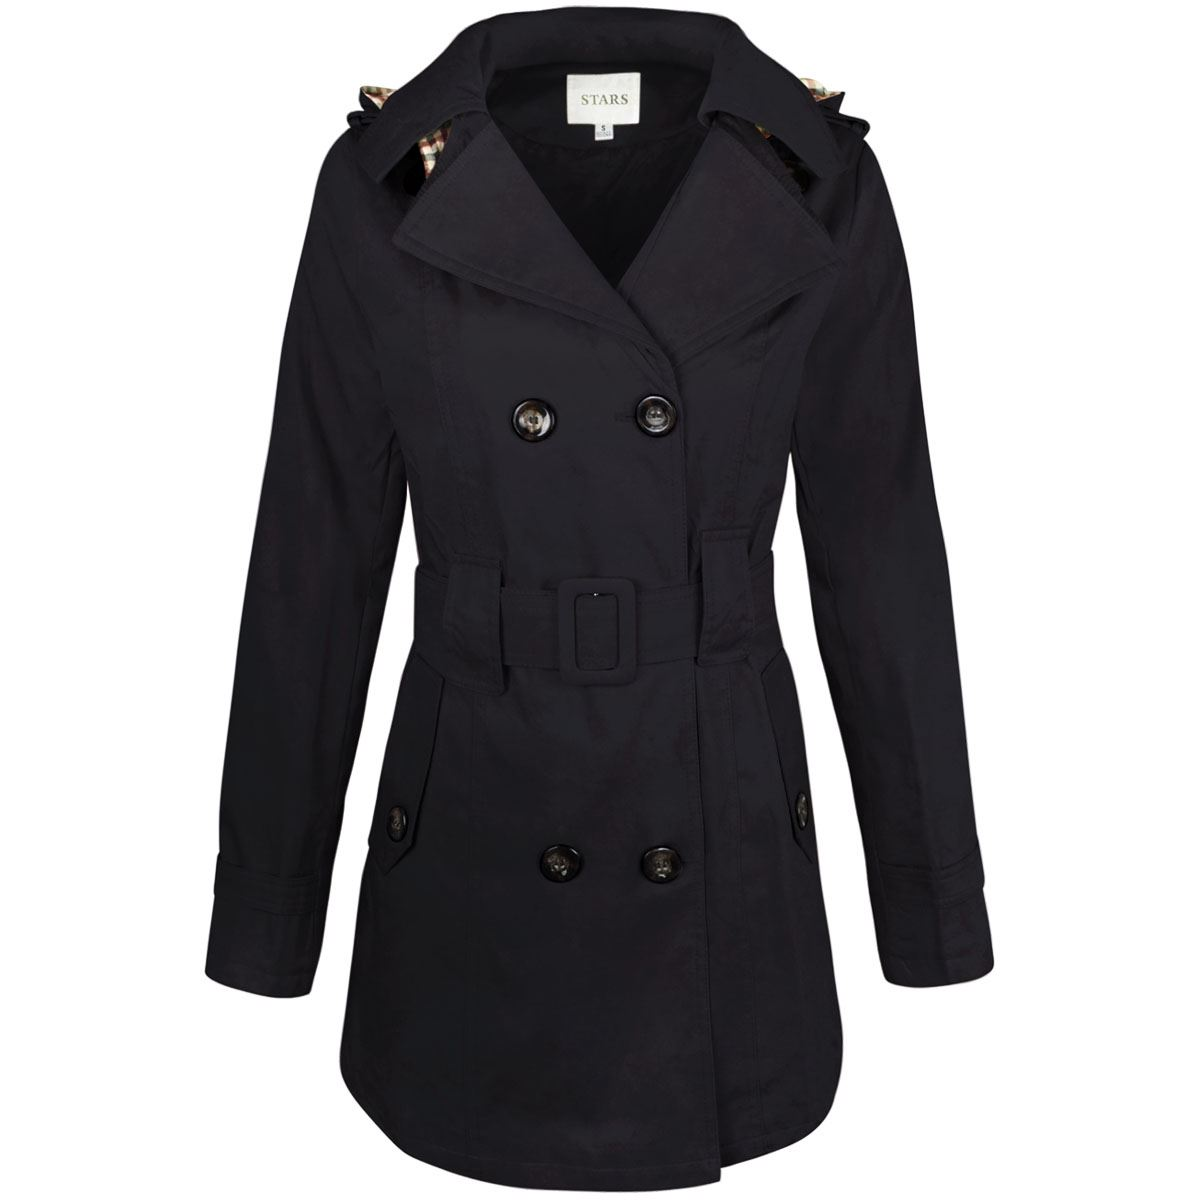 WOMENS-LADIES-DOUBLE-BREASTED-MAC-BELTED-COAT-CANVAS-SMART-JACKET-TRENCH-PARKA thumbnail 6